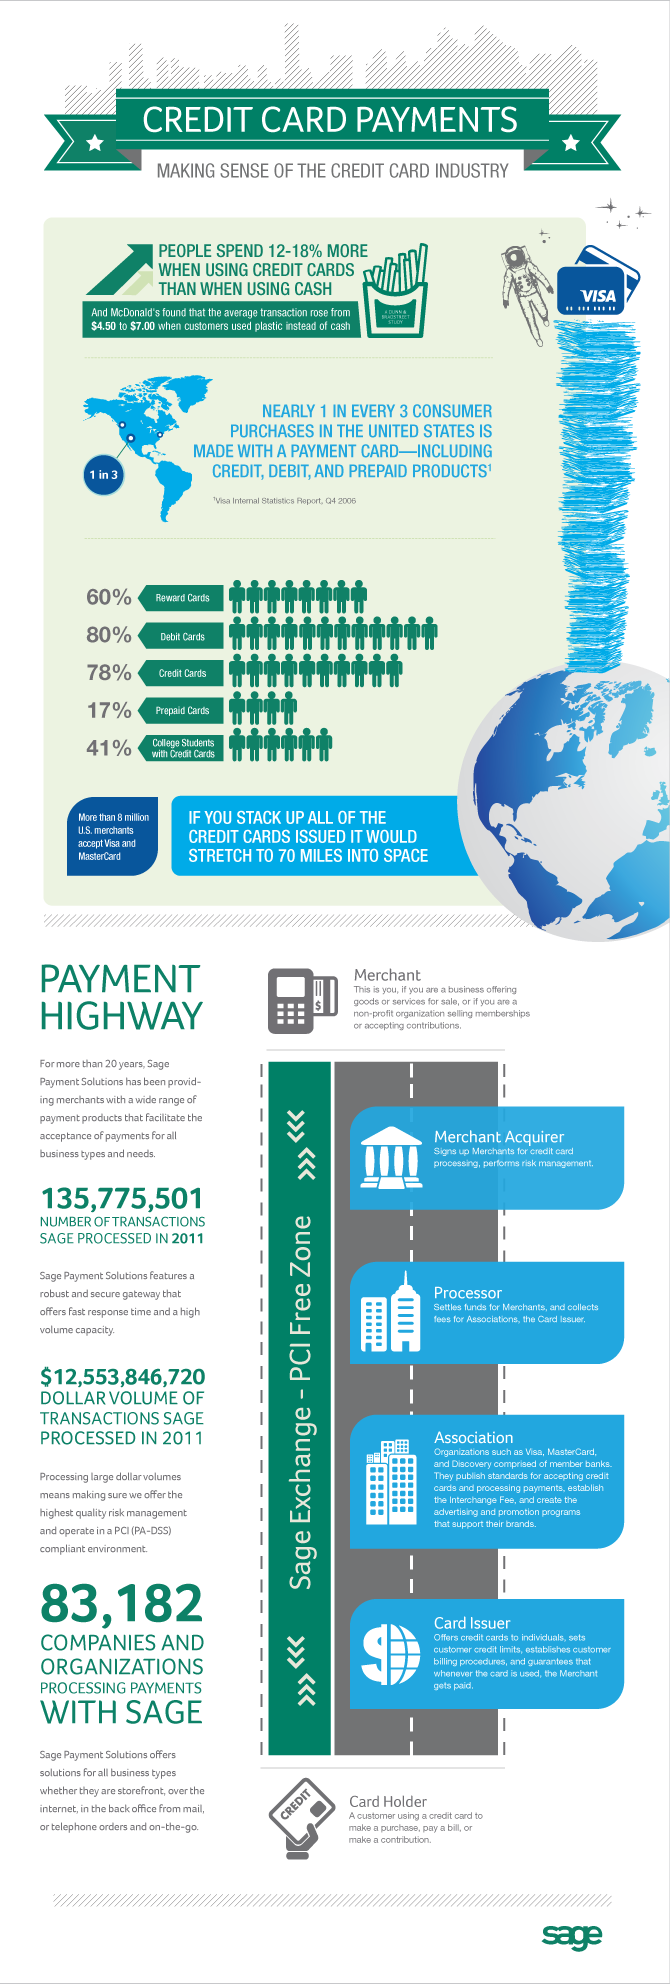 Credit Card Payments InfoGraphic